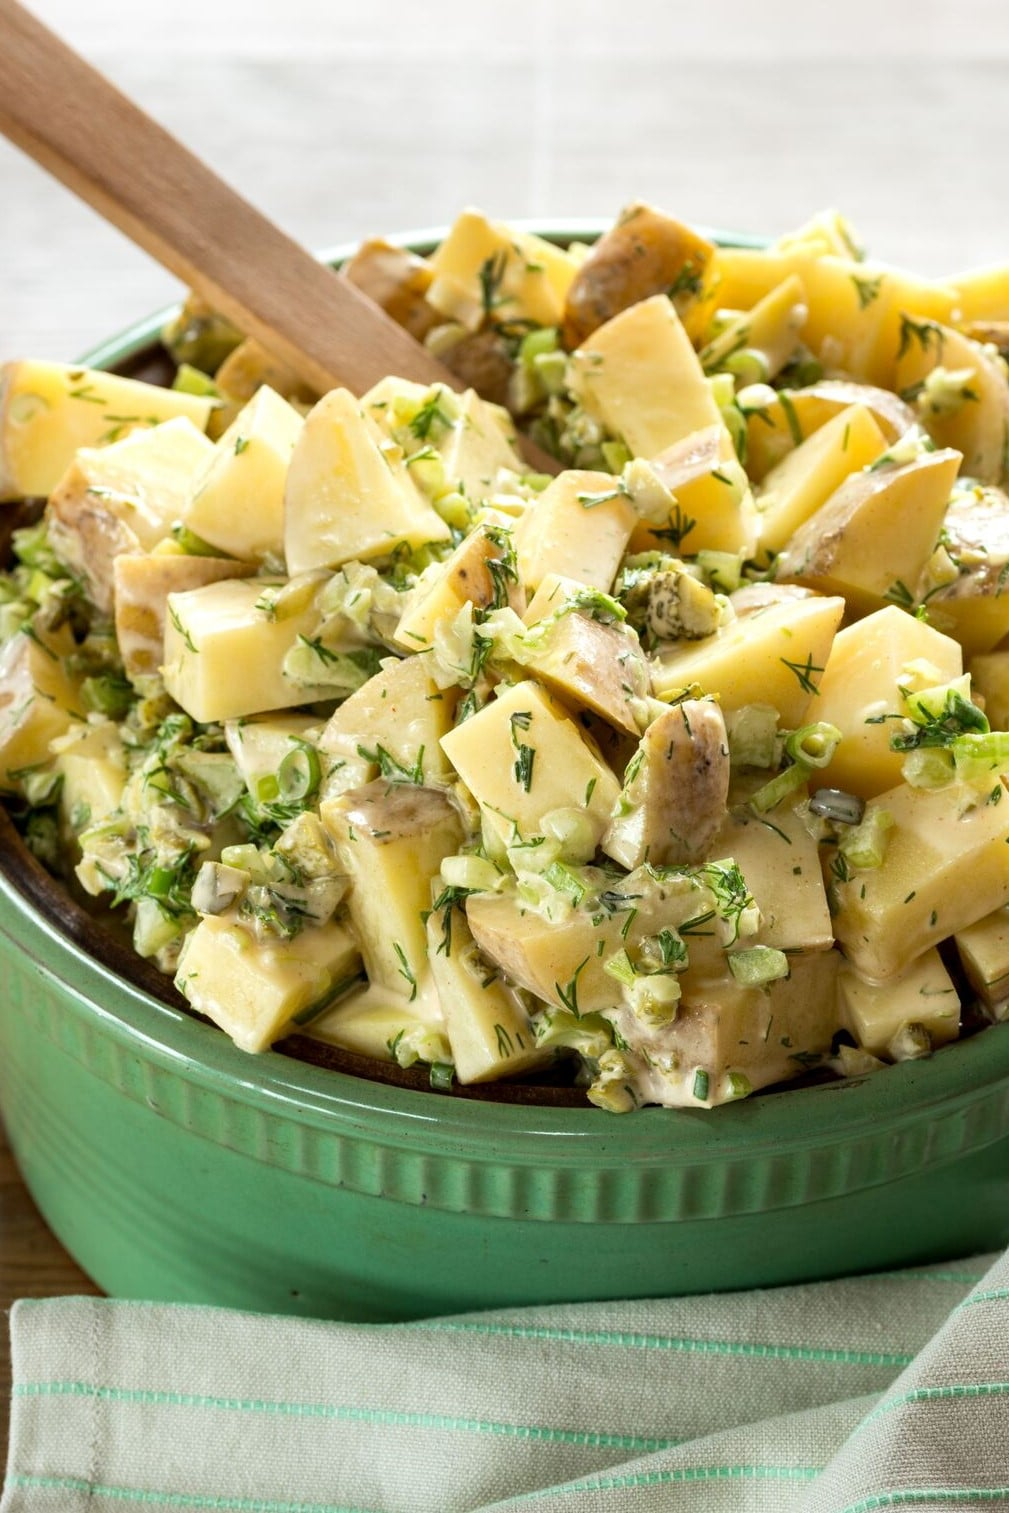 A close up of vegan potato salad in a green bowl with a wooden spoon sticking out of it